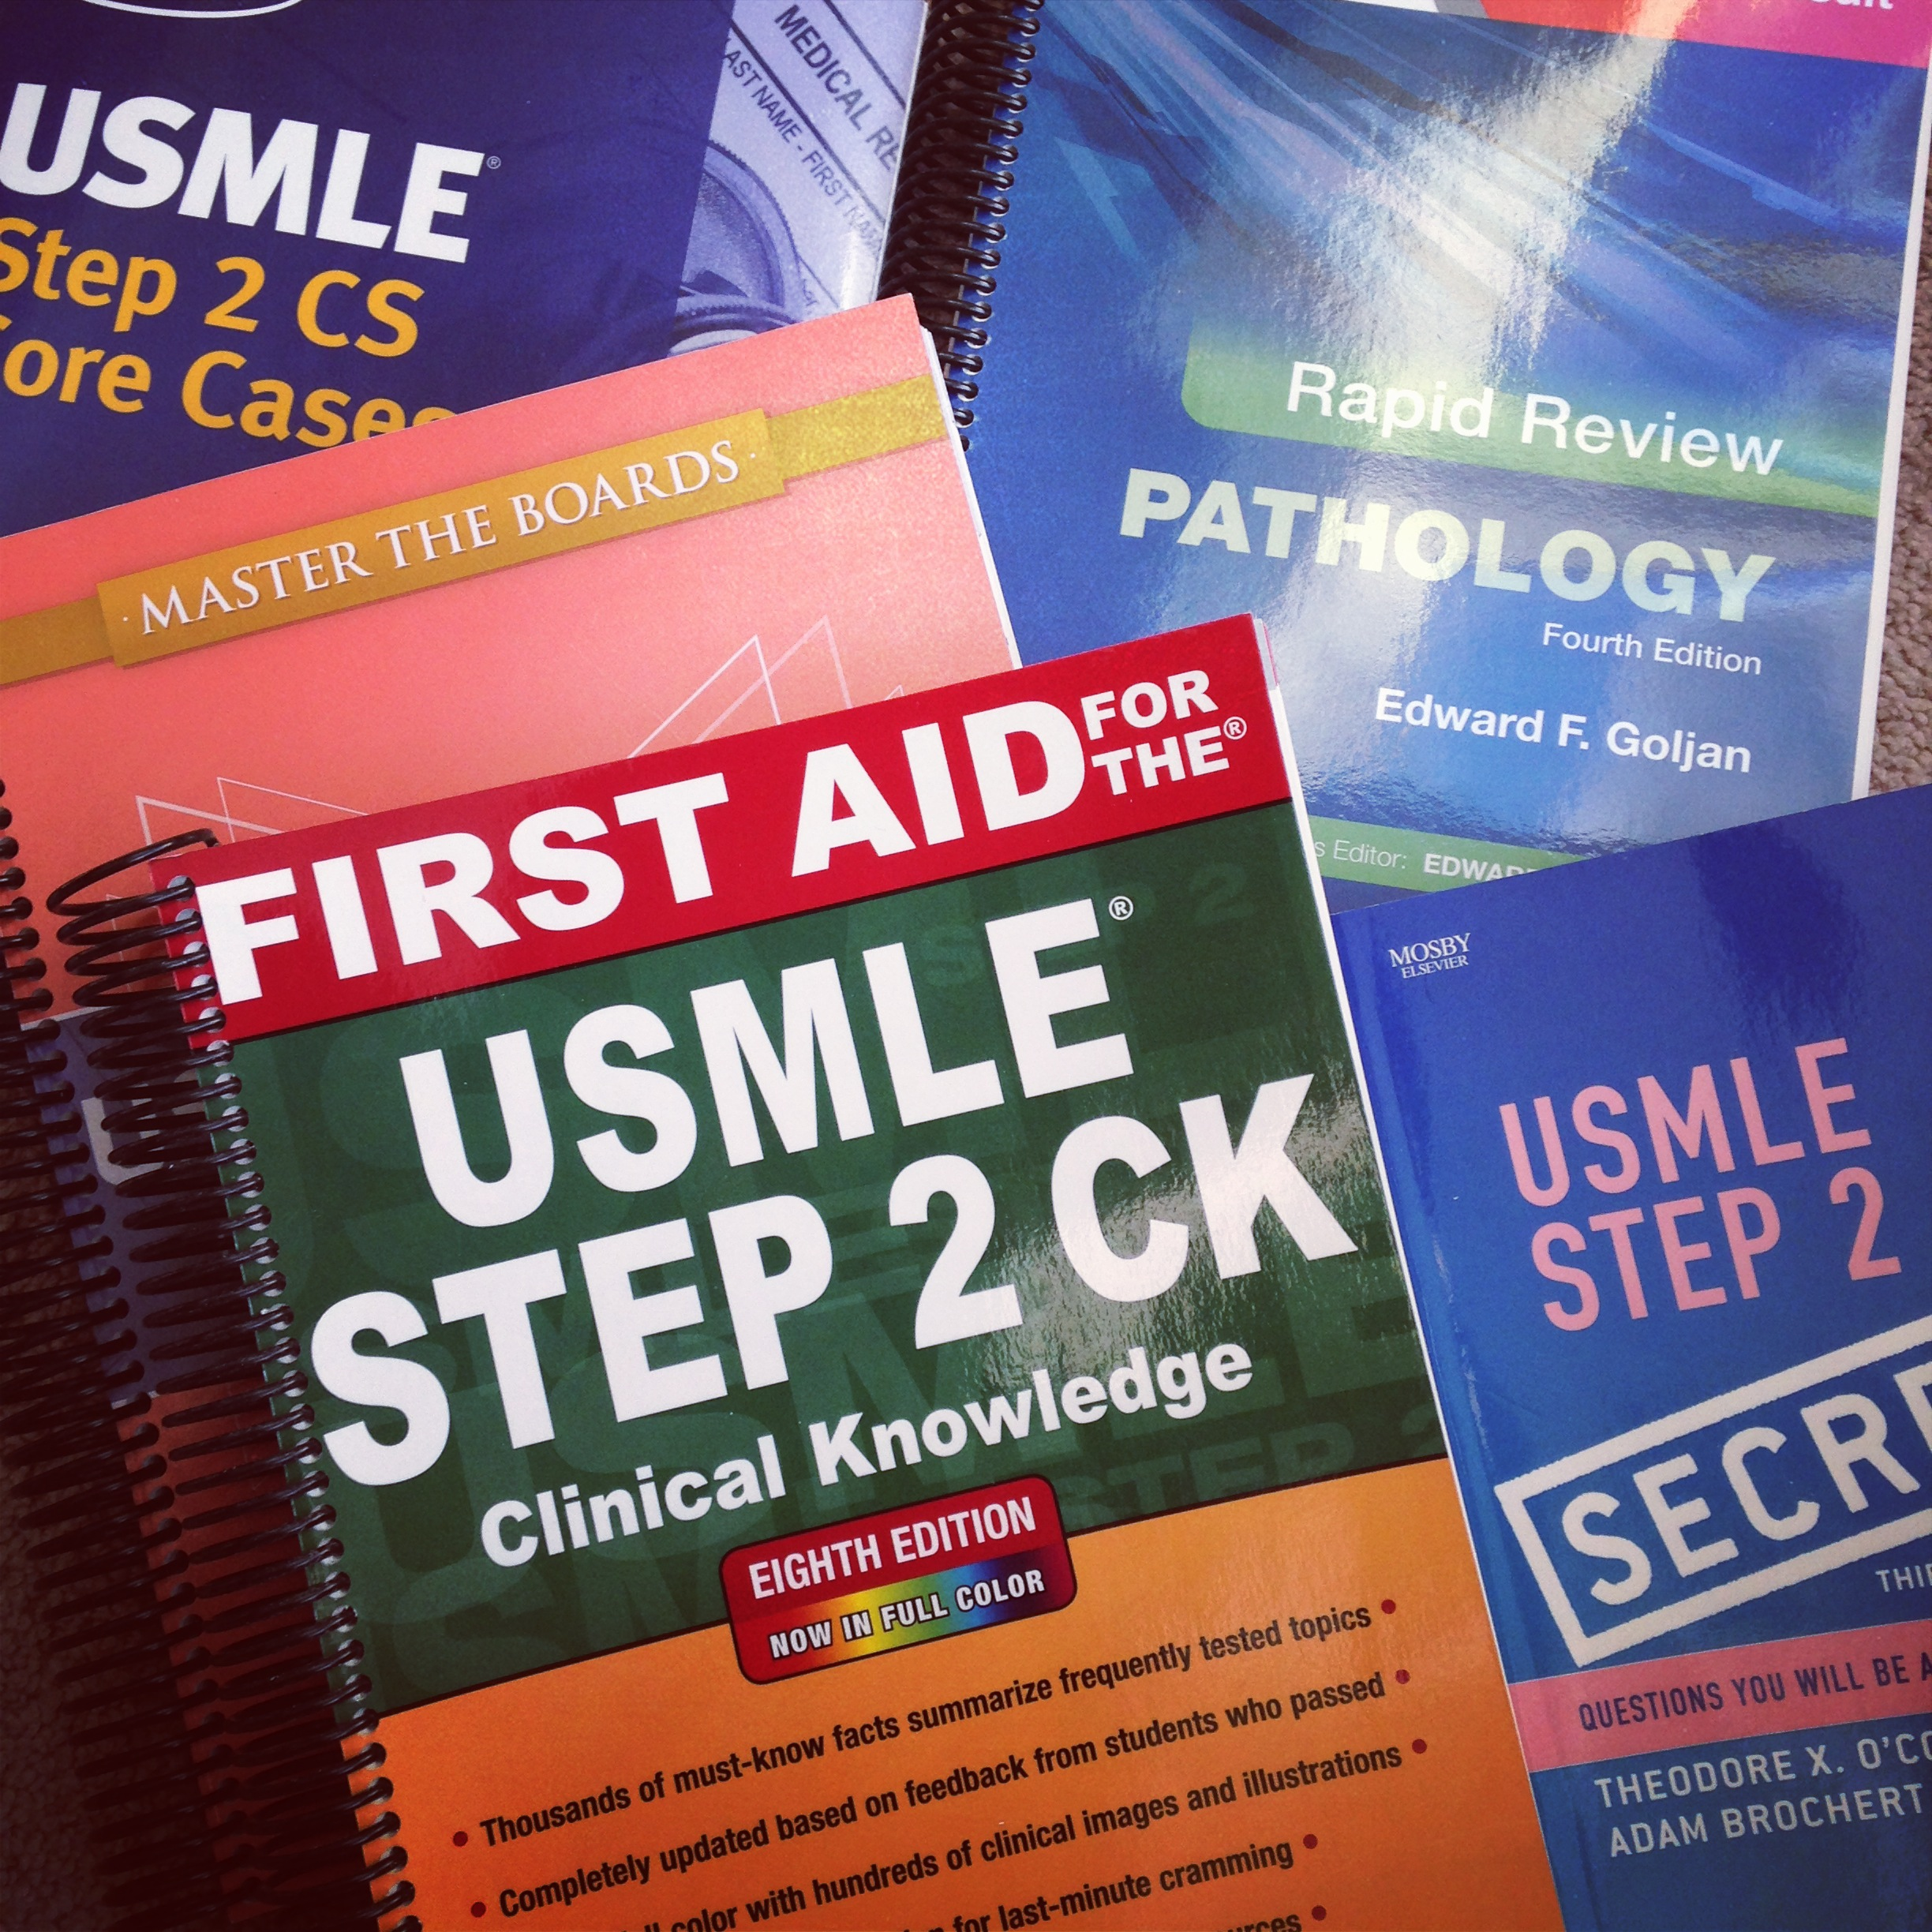 13 Study Tips to Help You Pass the USMLE Step 2 CS Exam | Faculty of